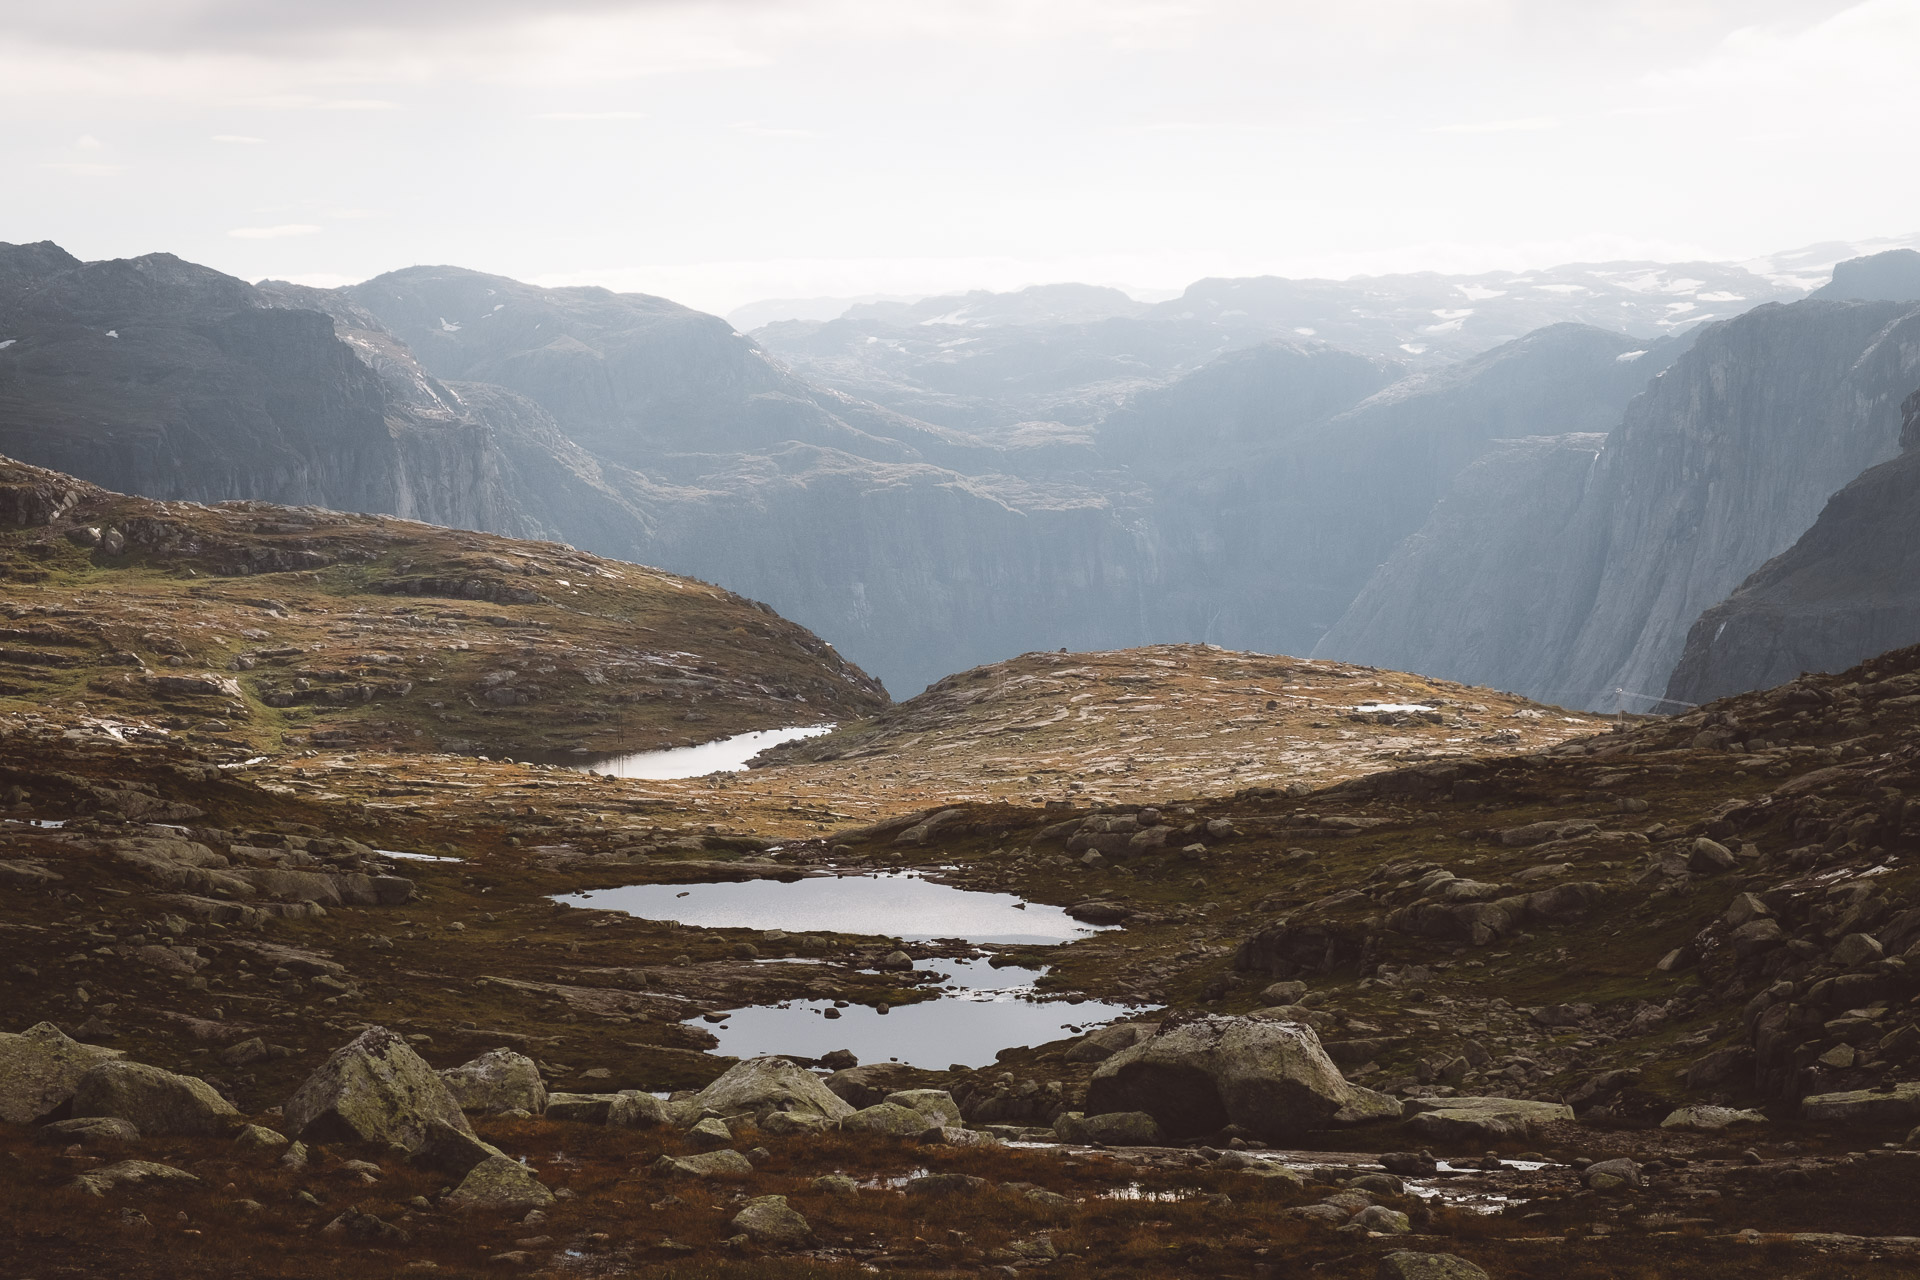 Trolltunga hike, photo guide, travel, day hike, Norway, hardangerfjord